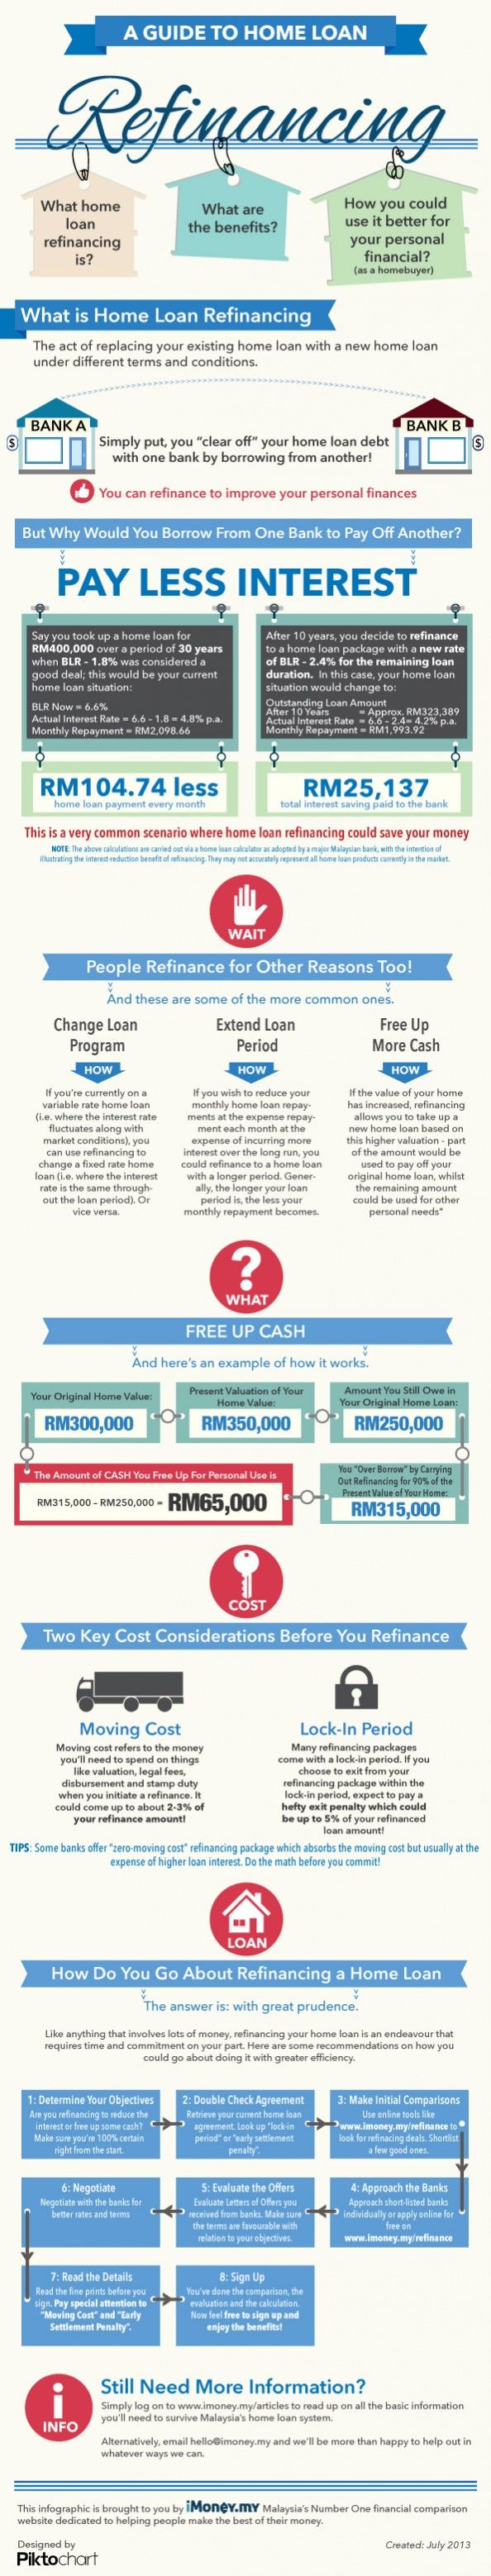 A Guide To Home Loan Refinancing Infographic Refinance Mortgage Home Loans Refinancing Mortgage